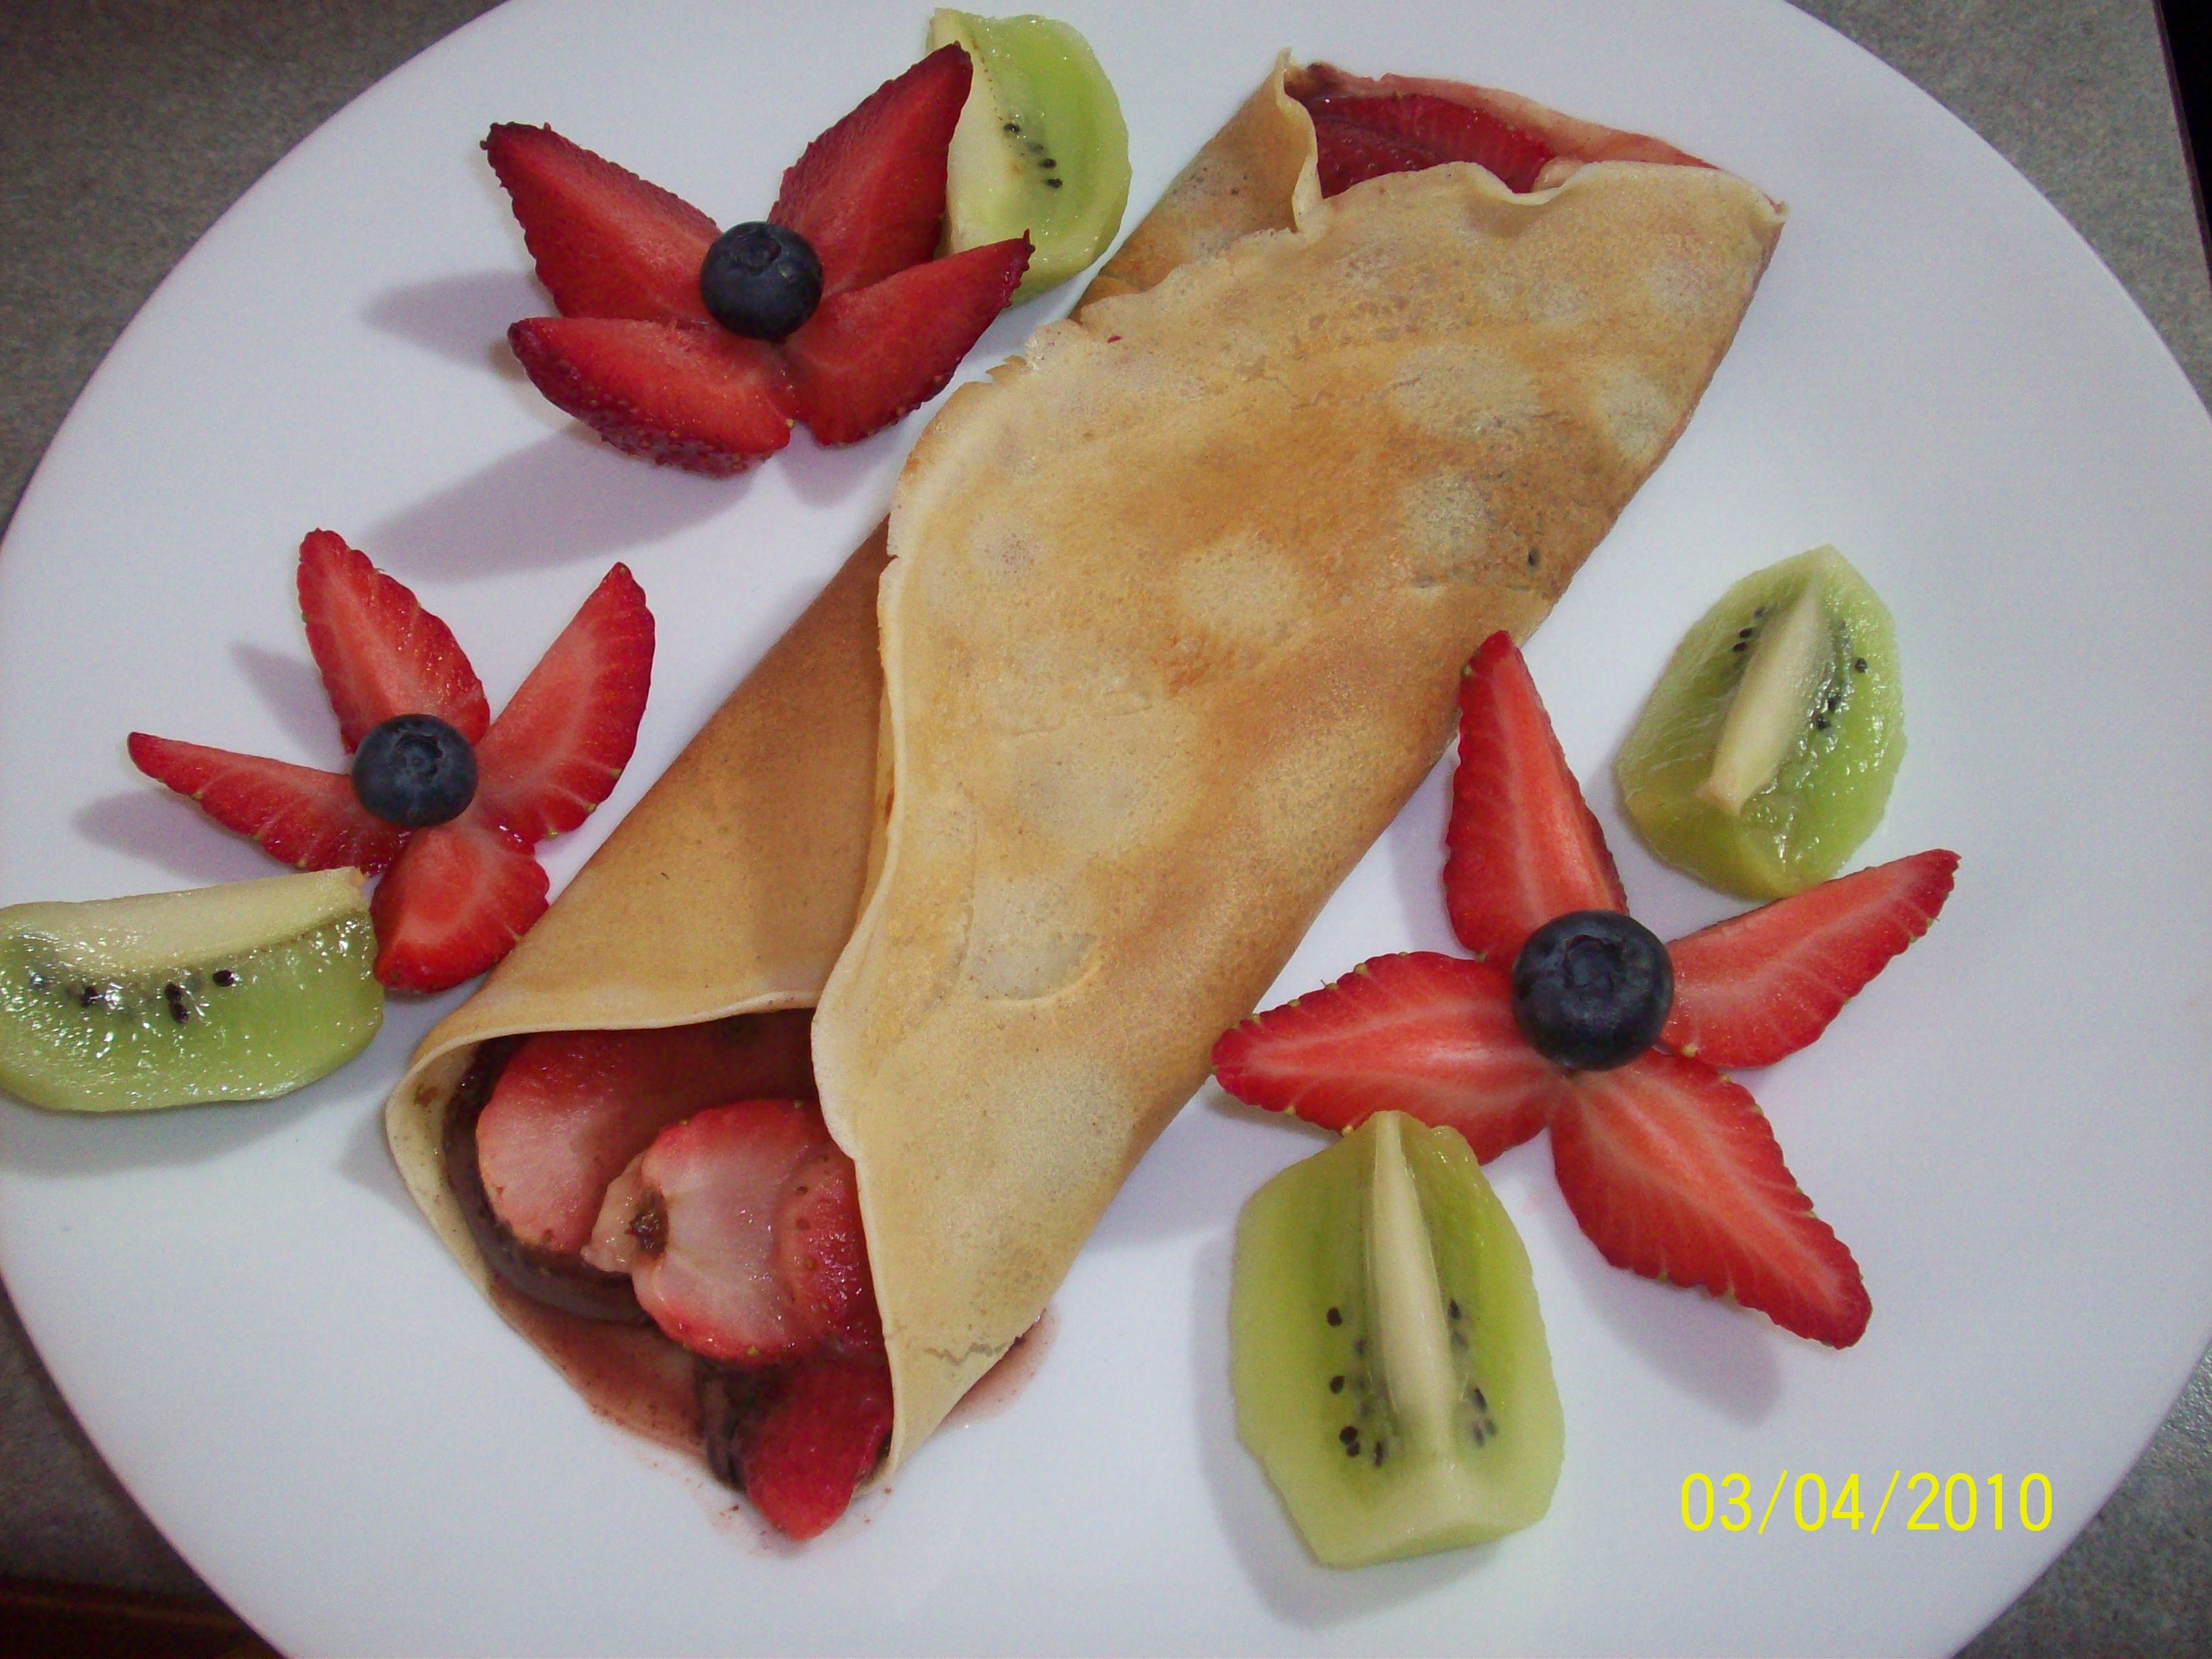 http://foodloader.net/cutie_2010-04-04_Cr__pes_with_strawberries__bananas_and_Nutella2.jpg